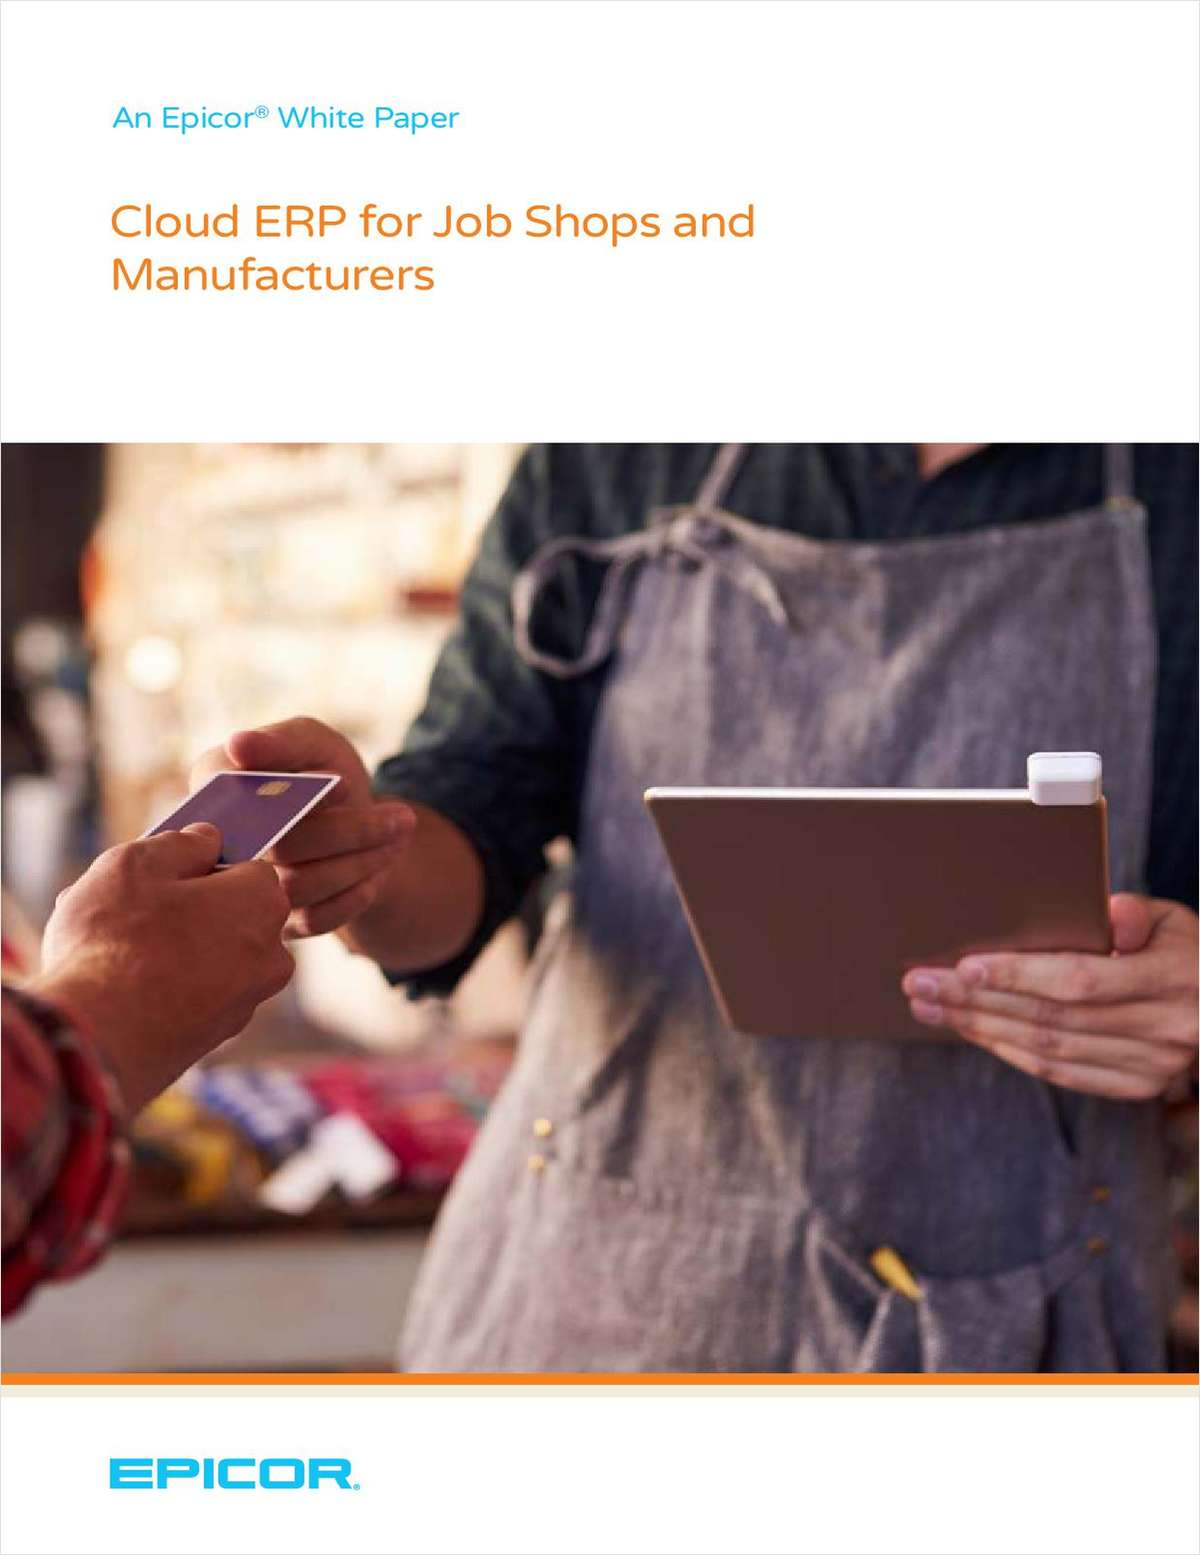 Cloud ERP for Job Shops and Manufacturers